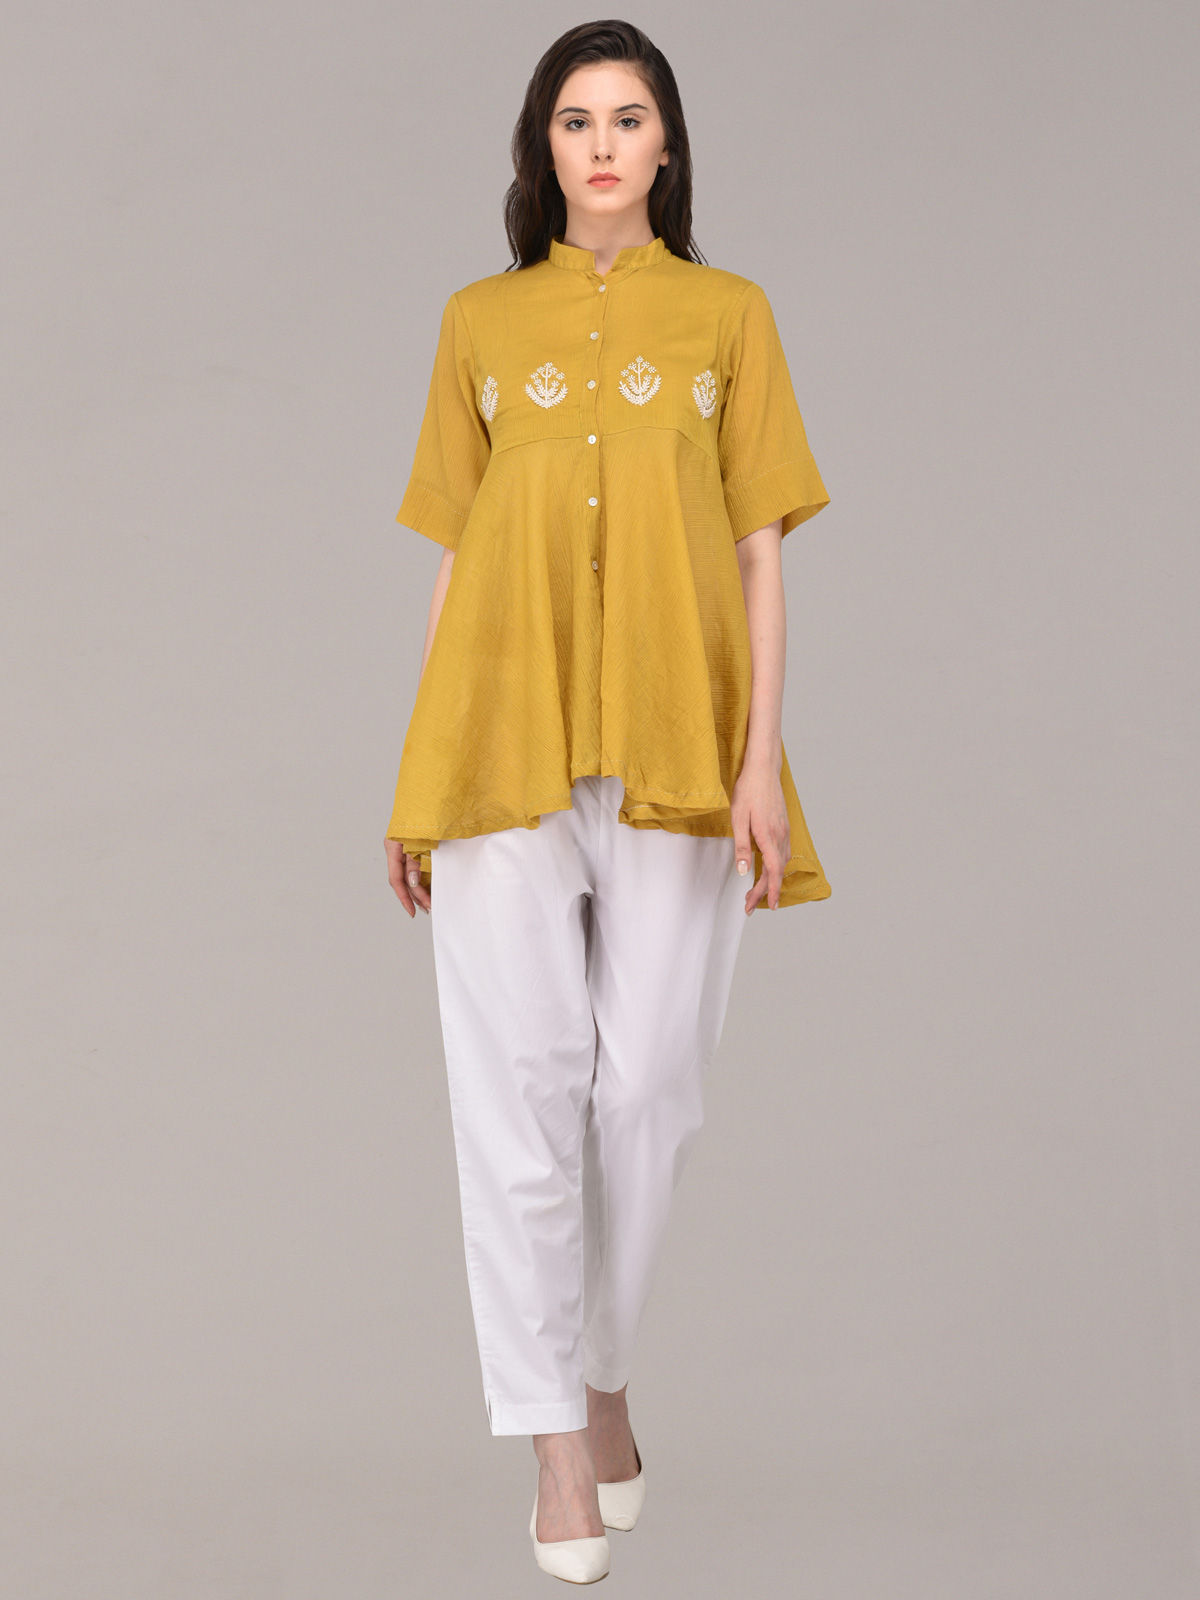 Panachee hand embroidered mustard pure cotton top